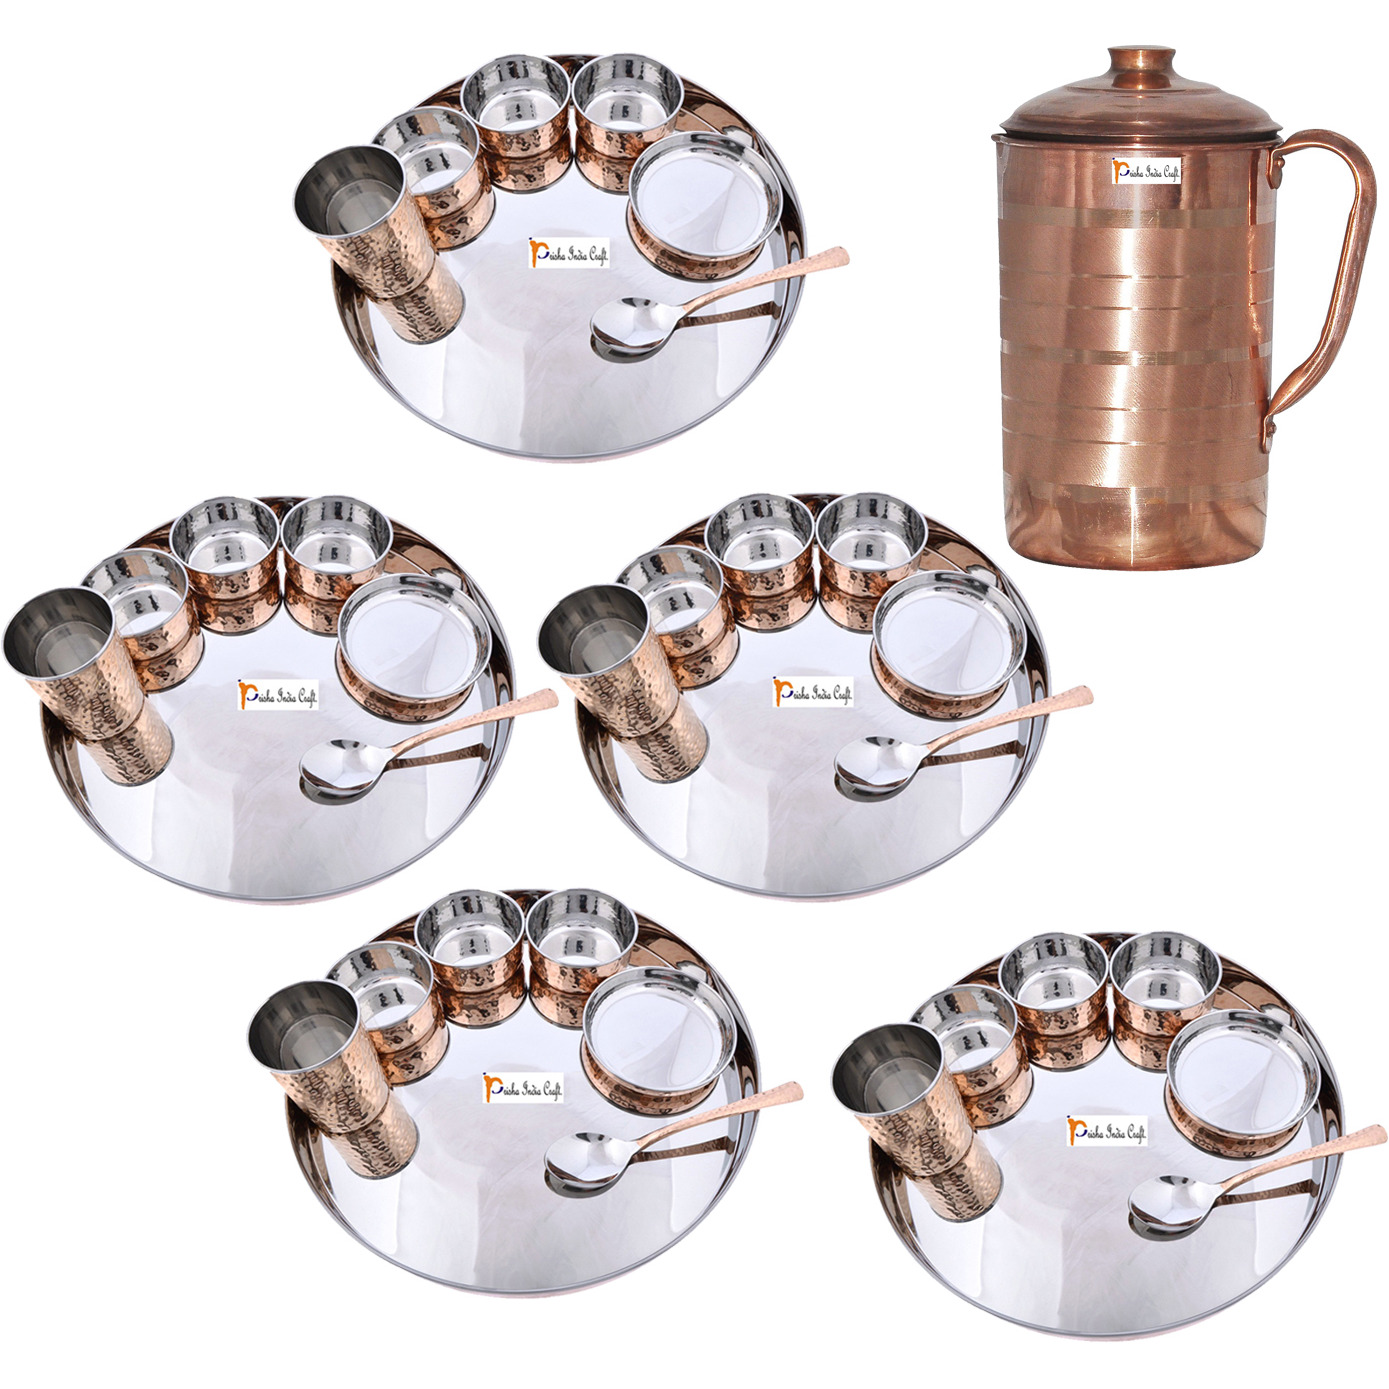 Prisha India Craft B. Set of 5 Dinnerware Traditional Stainless Steel Copper Dinner Set of Thali Plate, Bowls, Glass and Spoon, Dia 13  With 1 Pure Copper Pitcher Jug - Christmas Gift